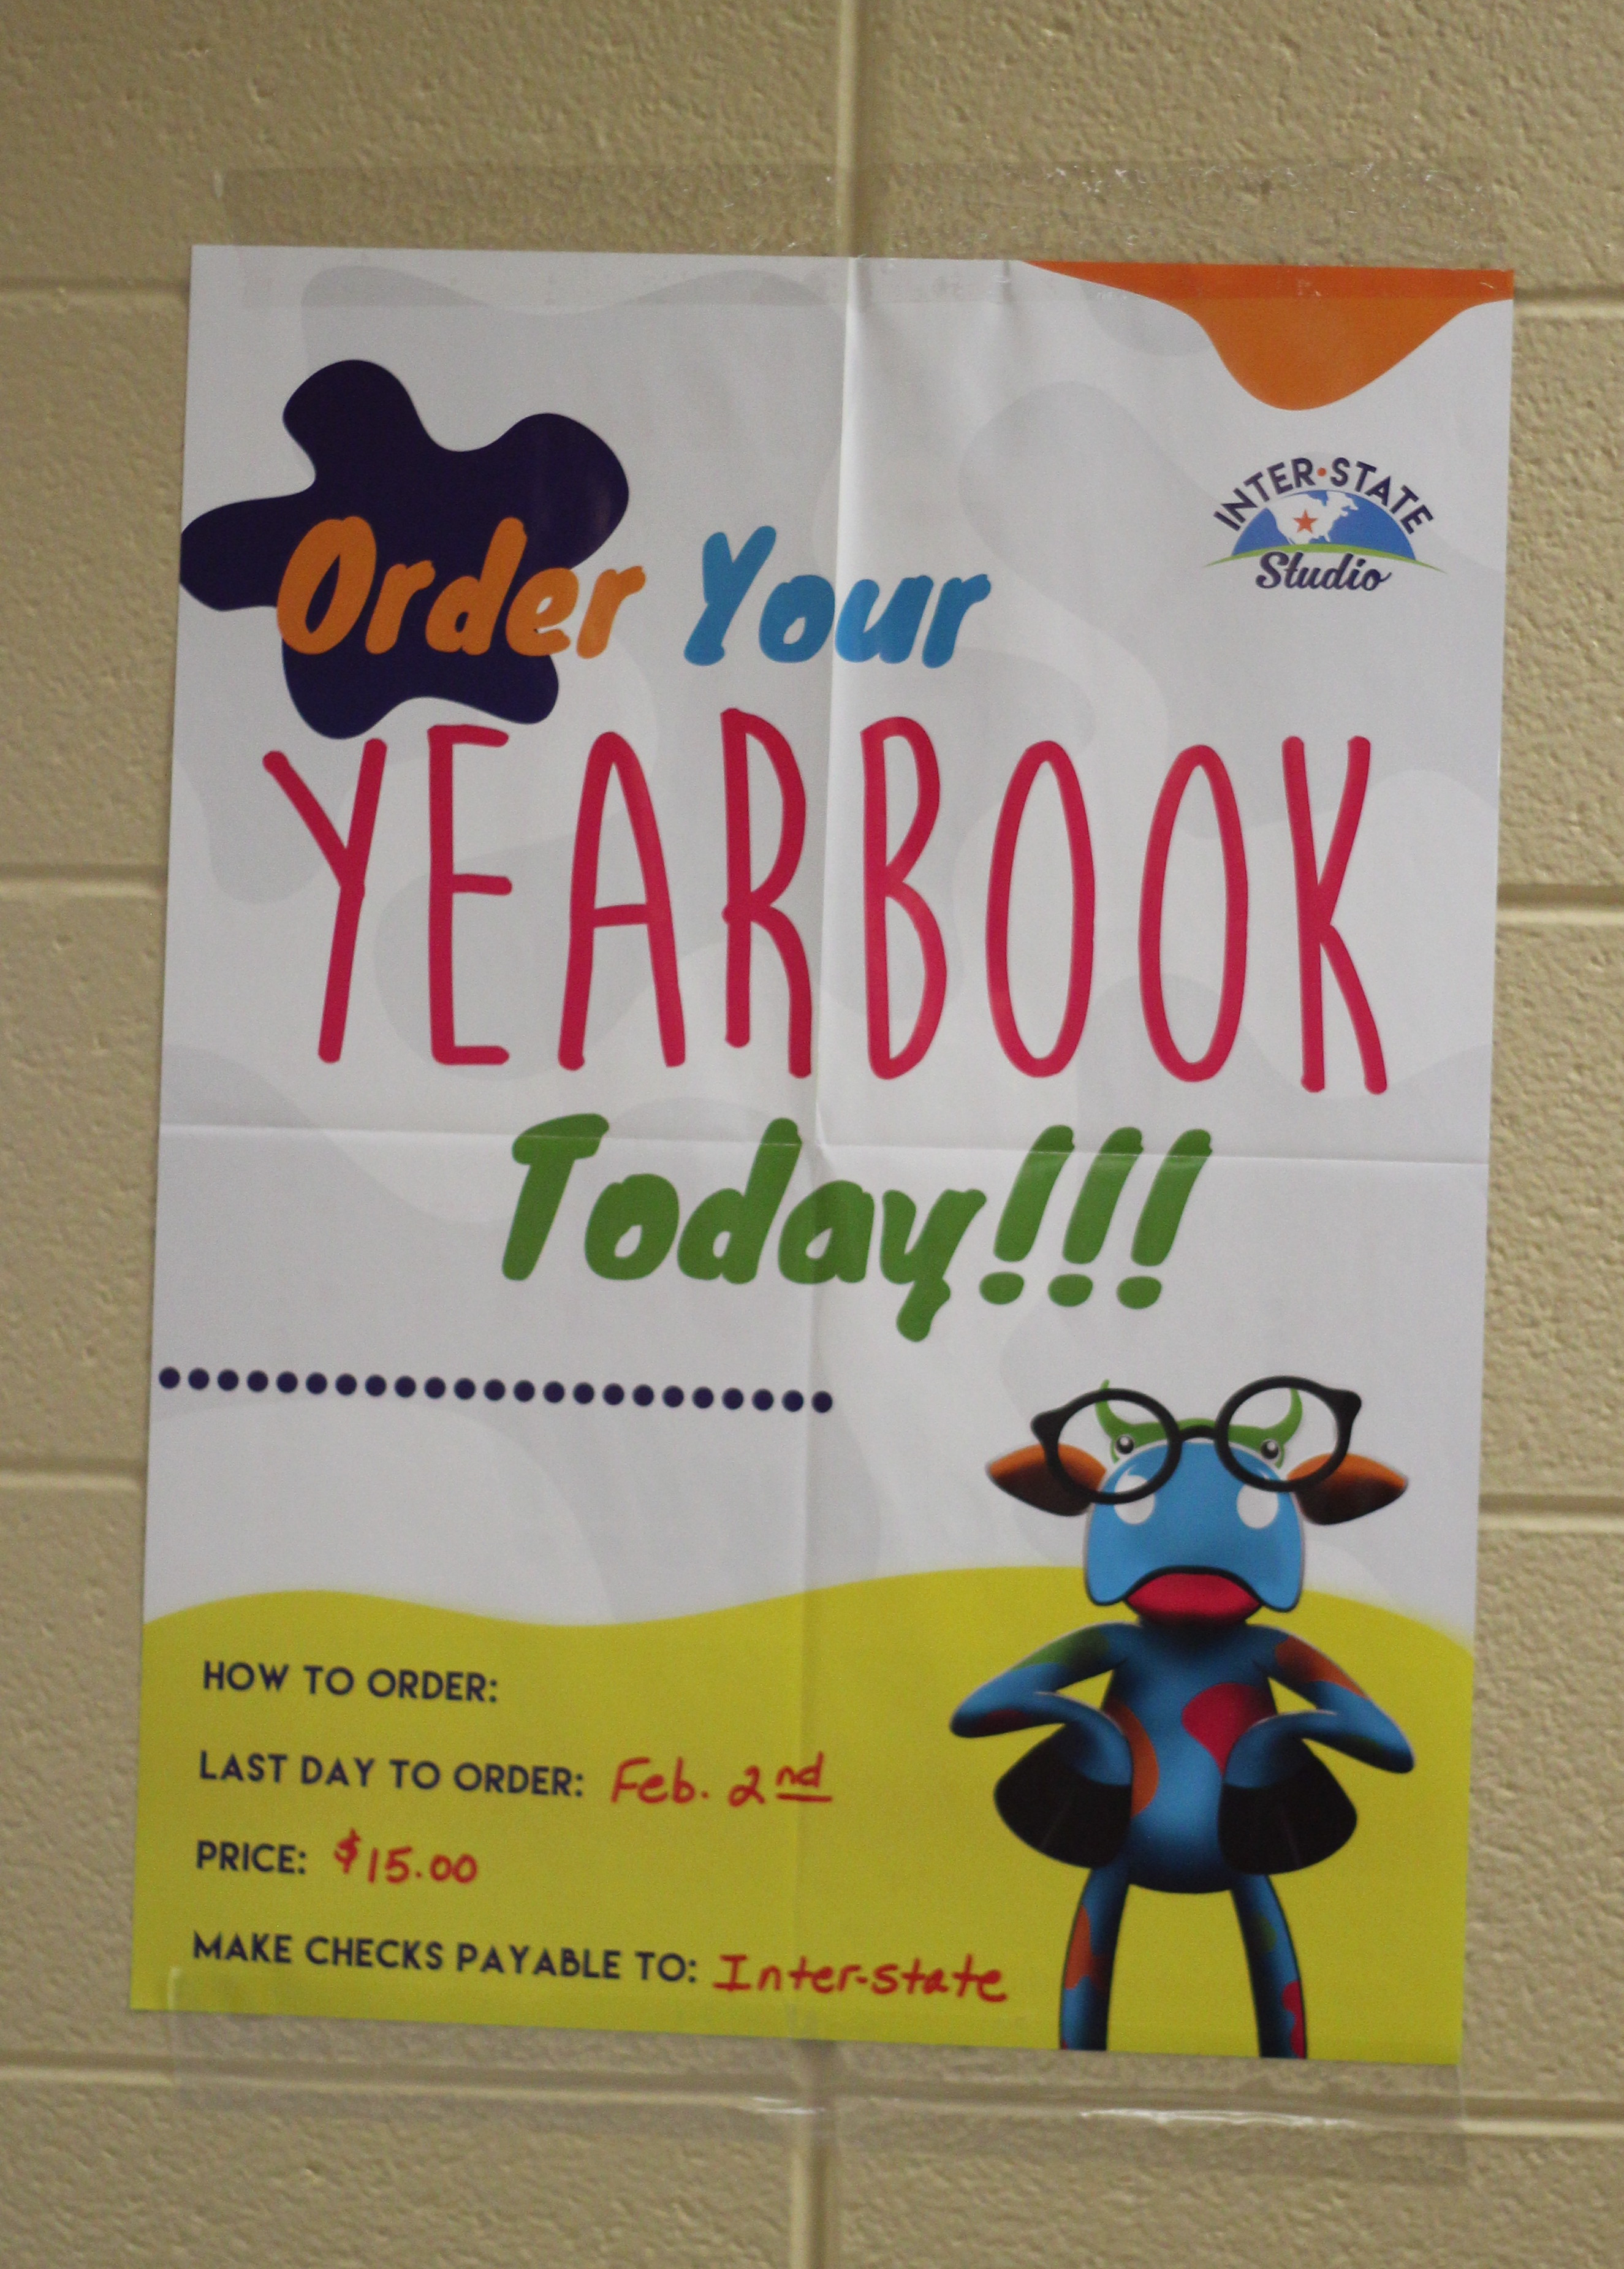 The yearbook is on sale till Feb. 2.